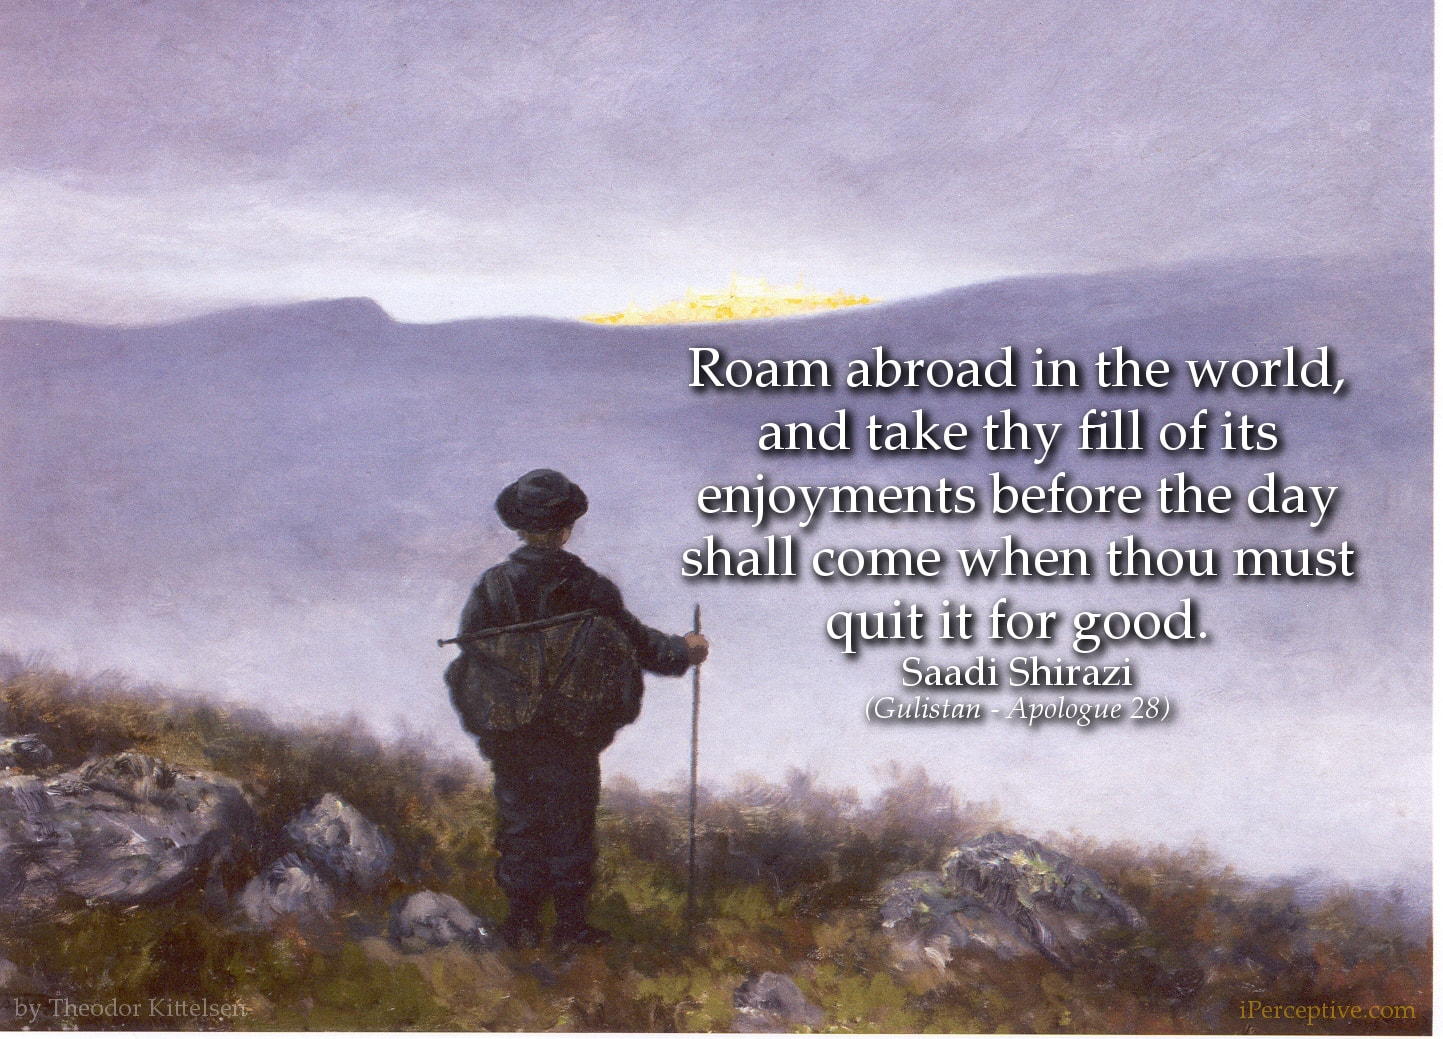 Saadi Shirazi Quote: Roam abroad in the world, and take thy fill of its enjoyments...